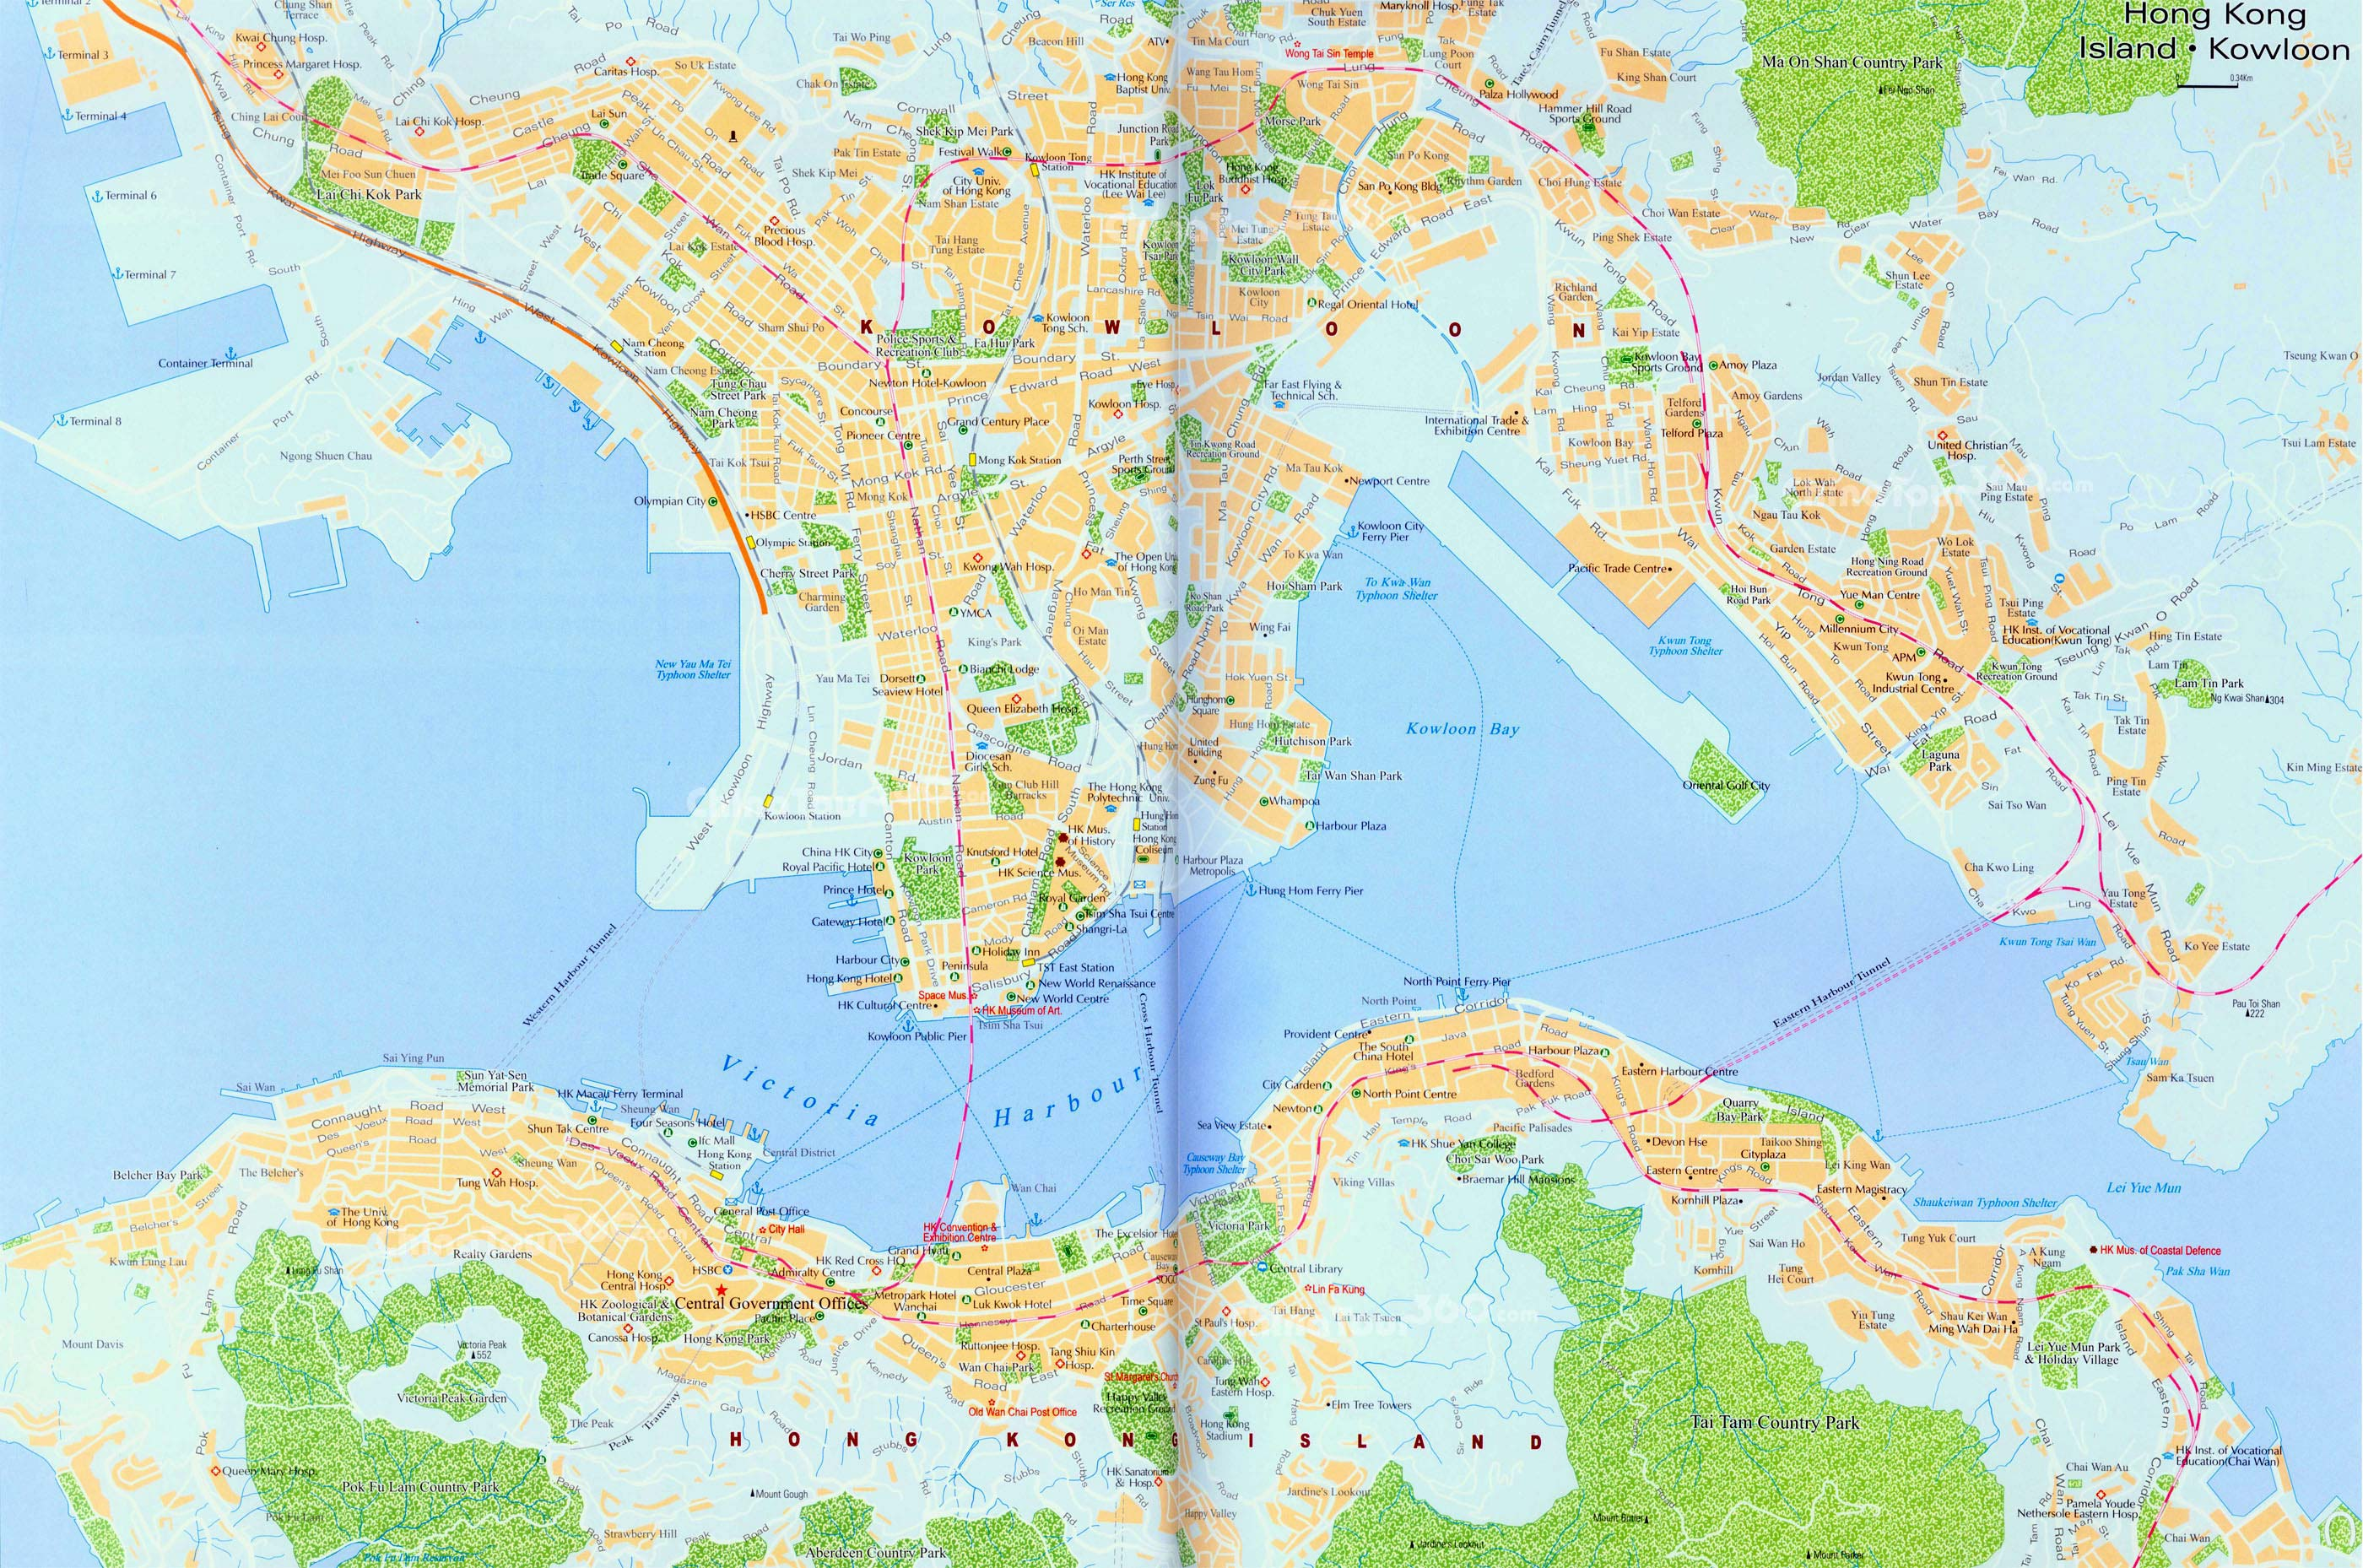 Hong Kong Island Map Kowloon Area Hong Kong Maps China Tour